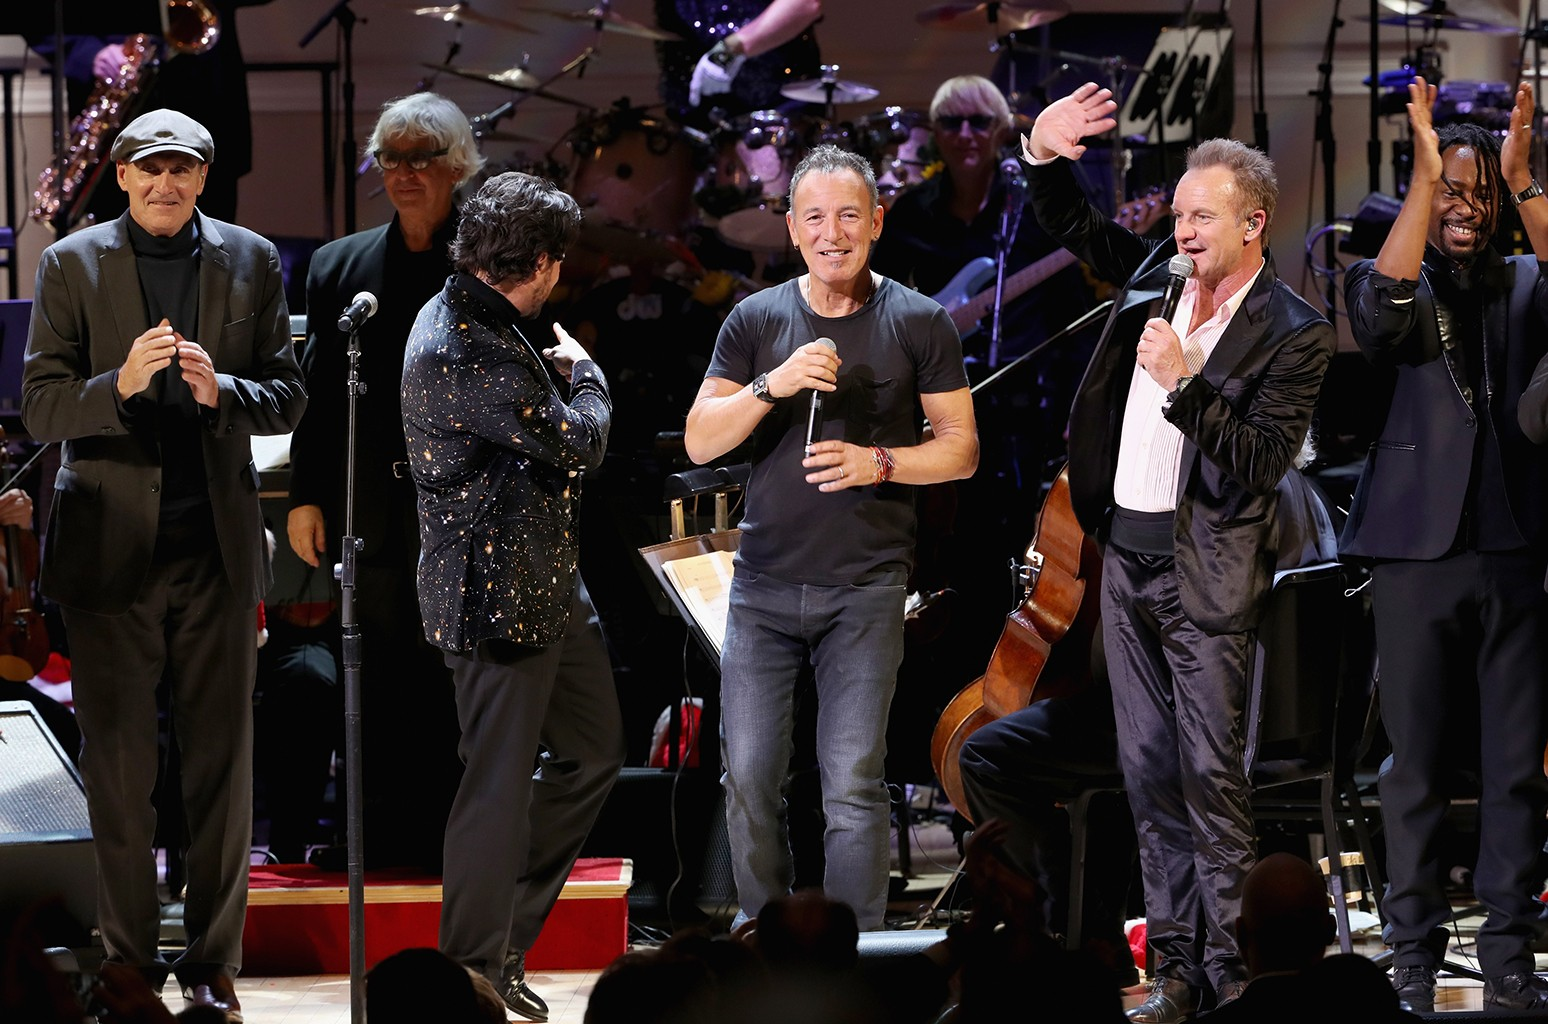 """James Taylor, Vittorio Grigolo, Bruce Springsteen, and Sting perform onstage during The Revlon Concert for the Rainforest Fund """"Baby It's Cold Outside"""" at Carnegie Hall on Dec. 14, 2016 in New York City."""